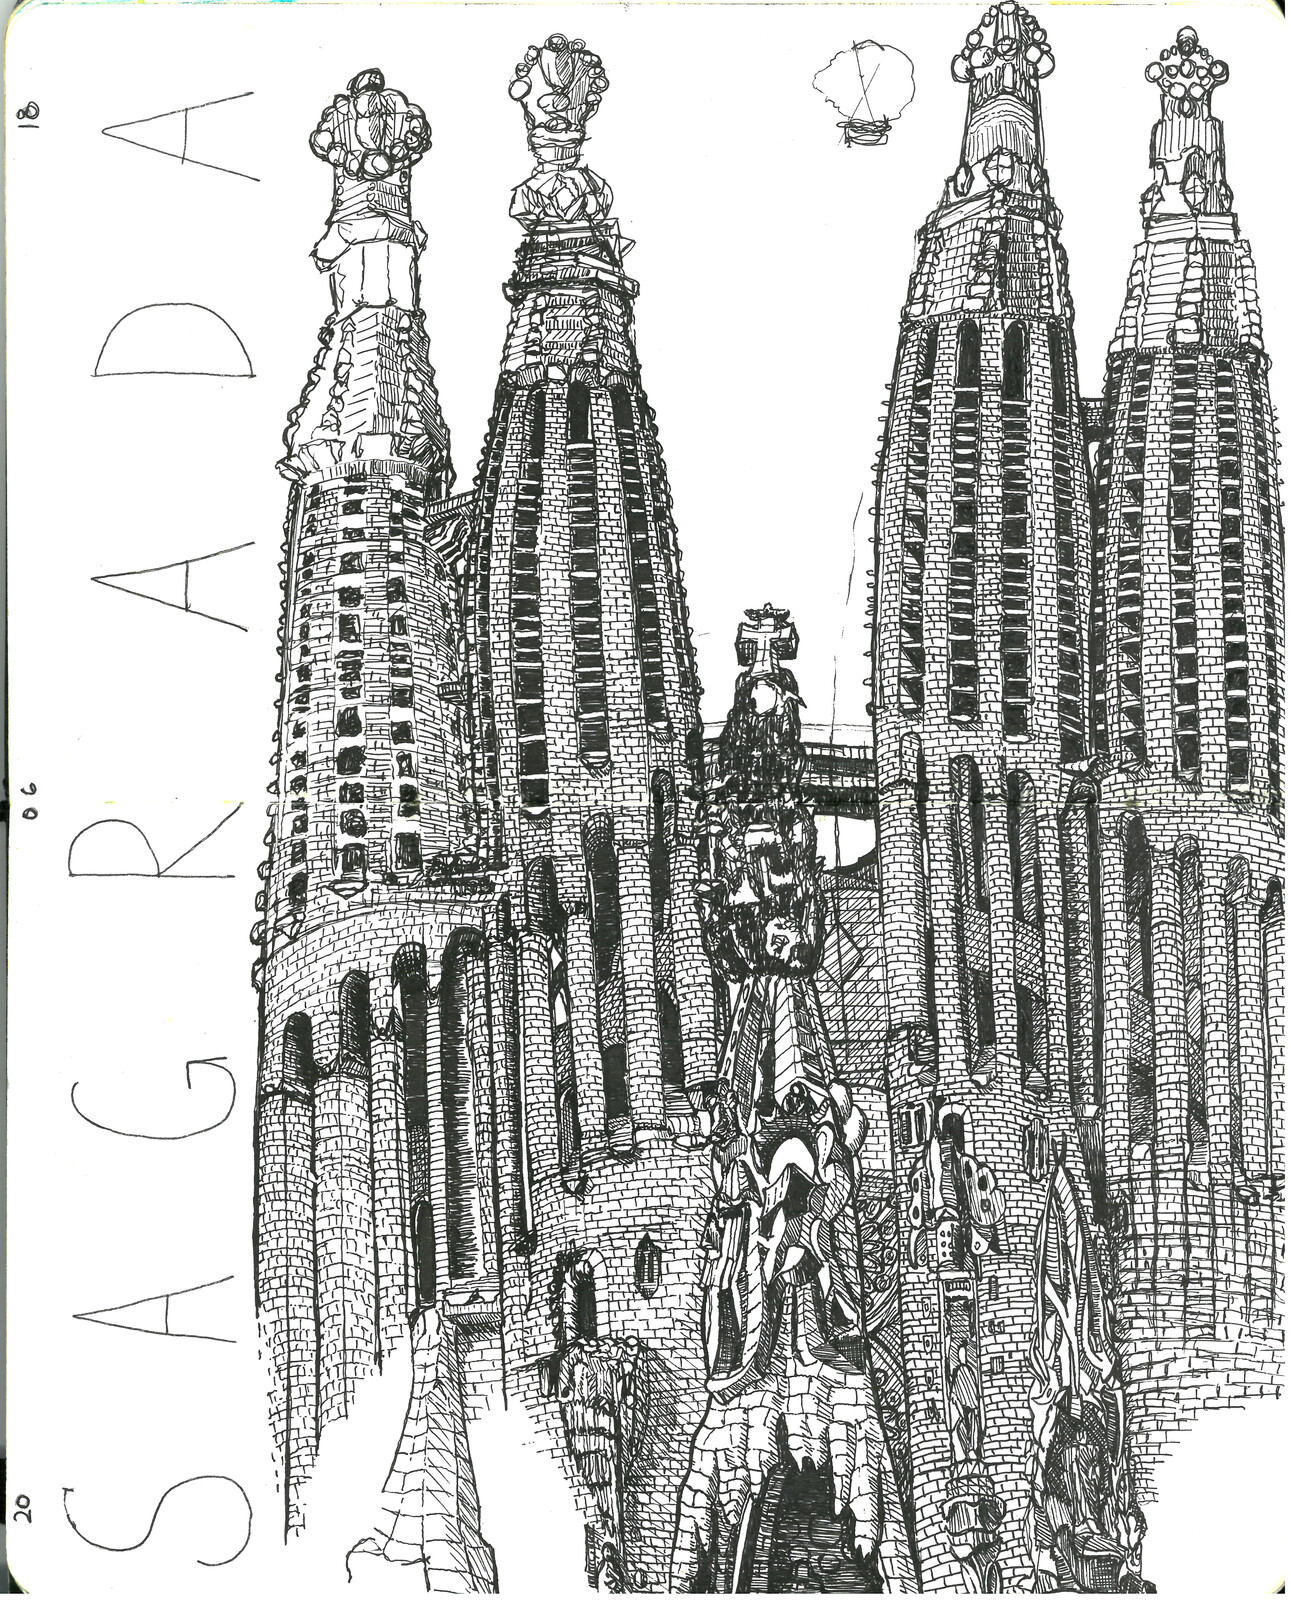 SAGRADA FAMILIA SKETCH